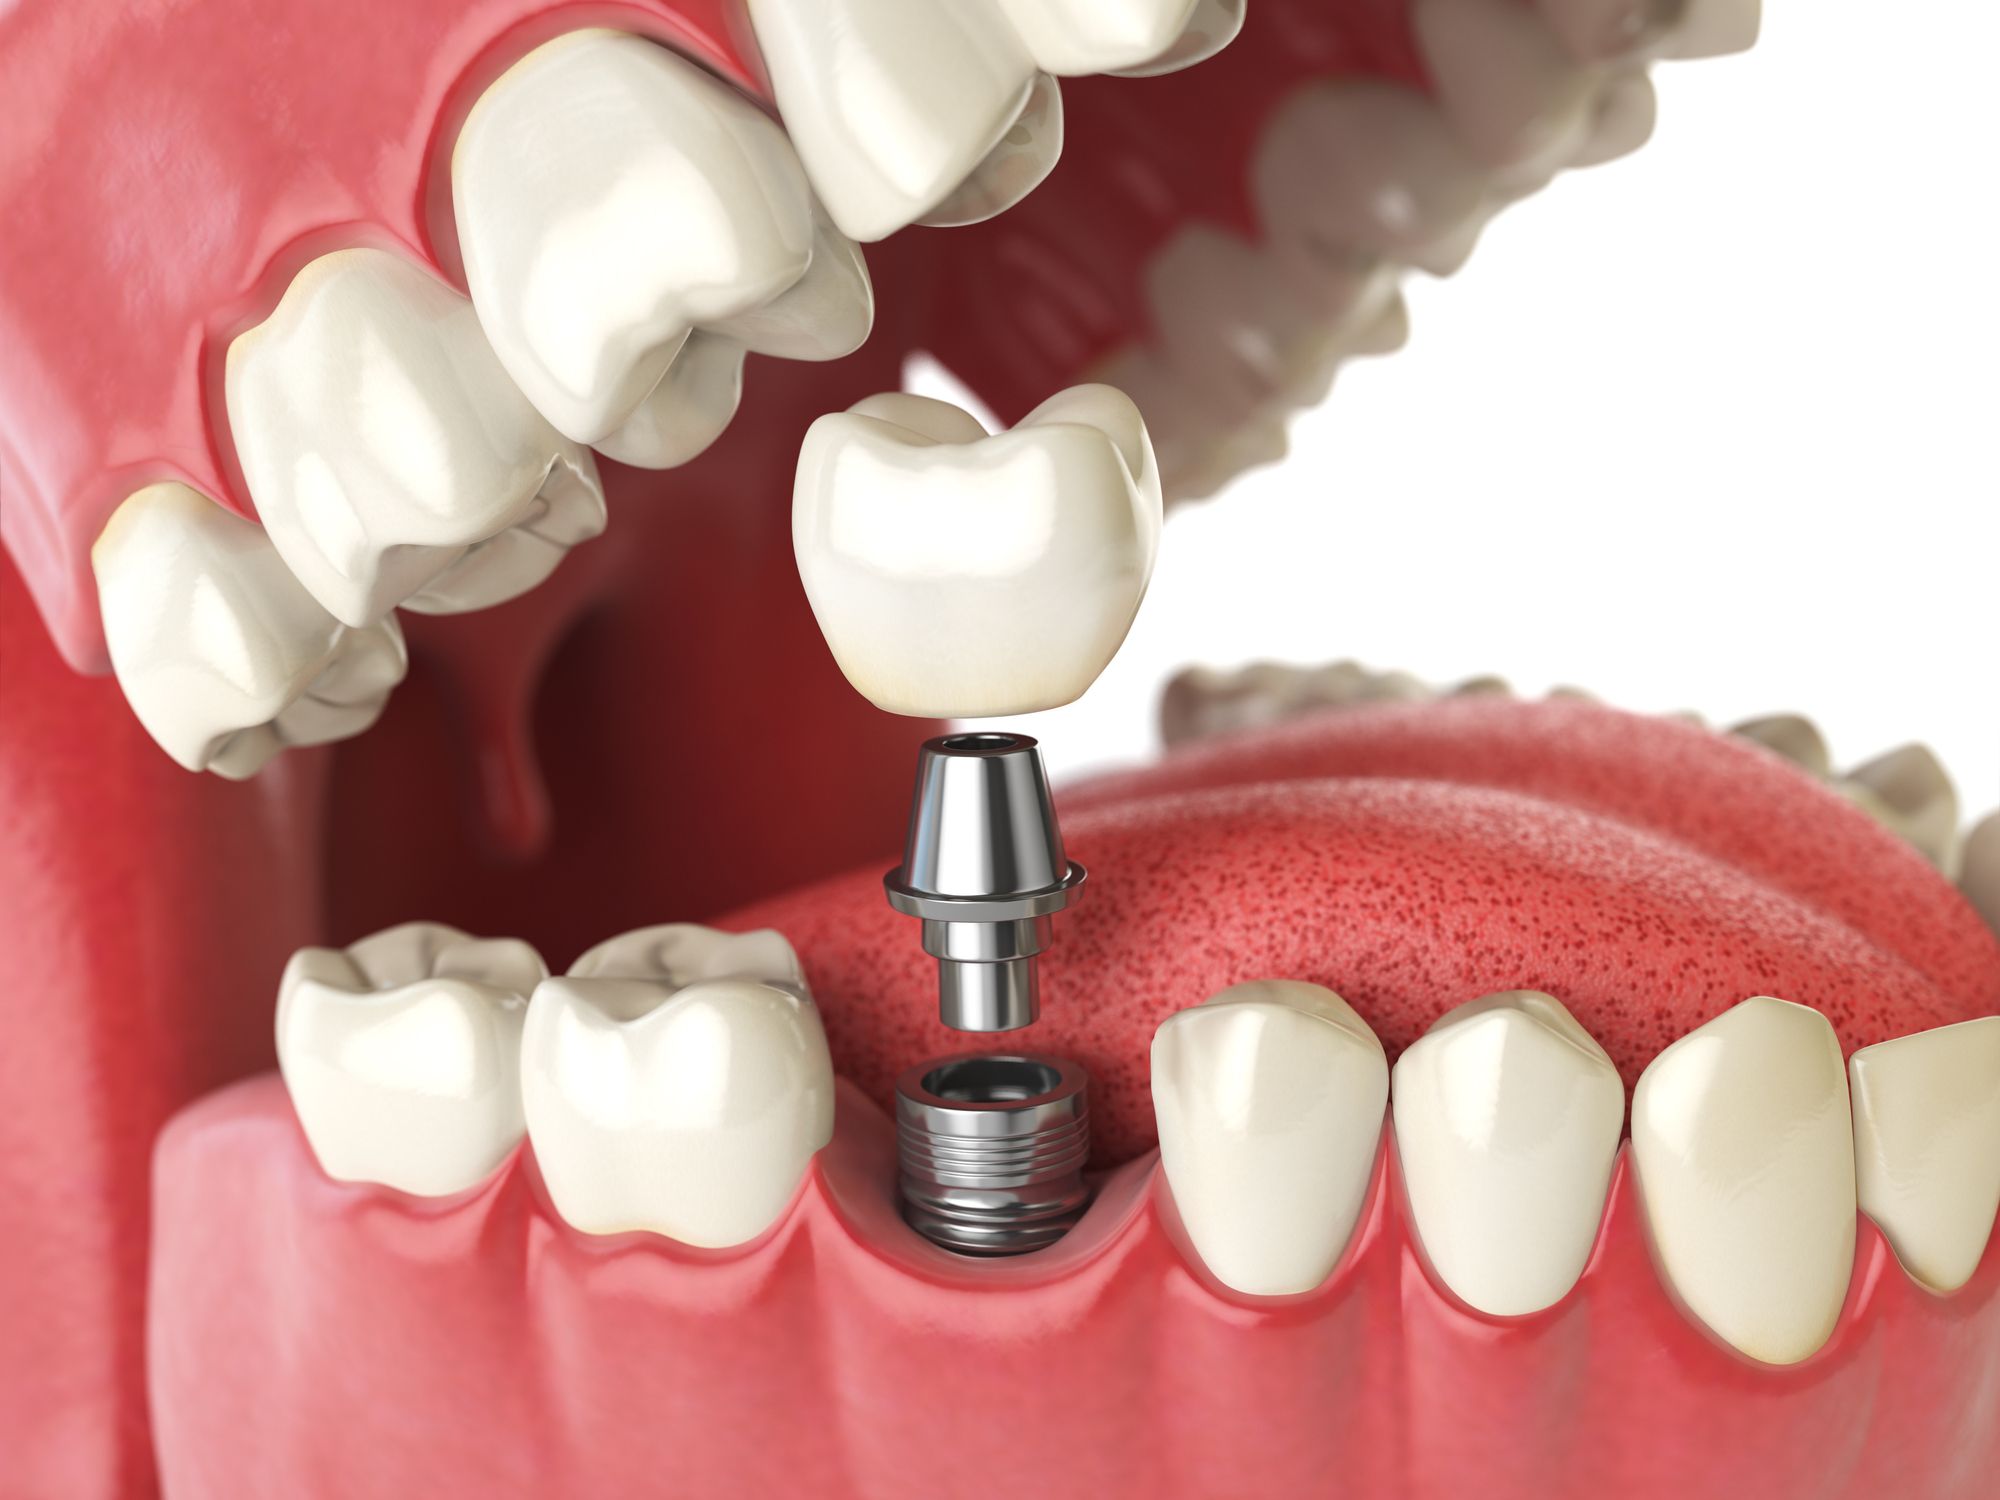 Implant Dentist in Cheshire